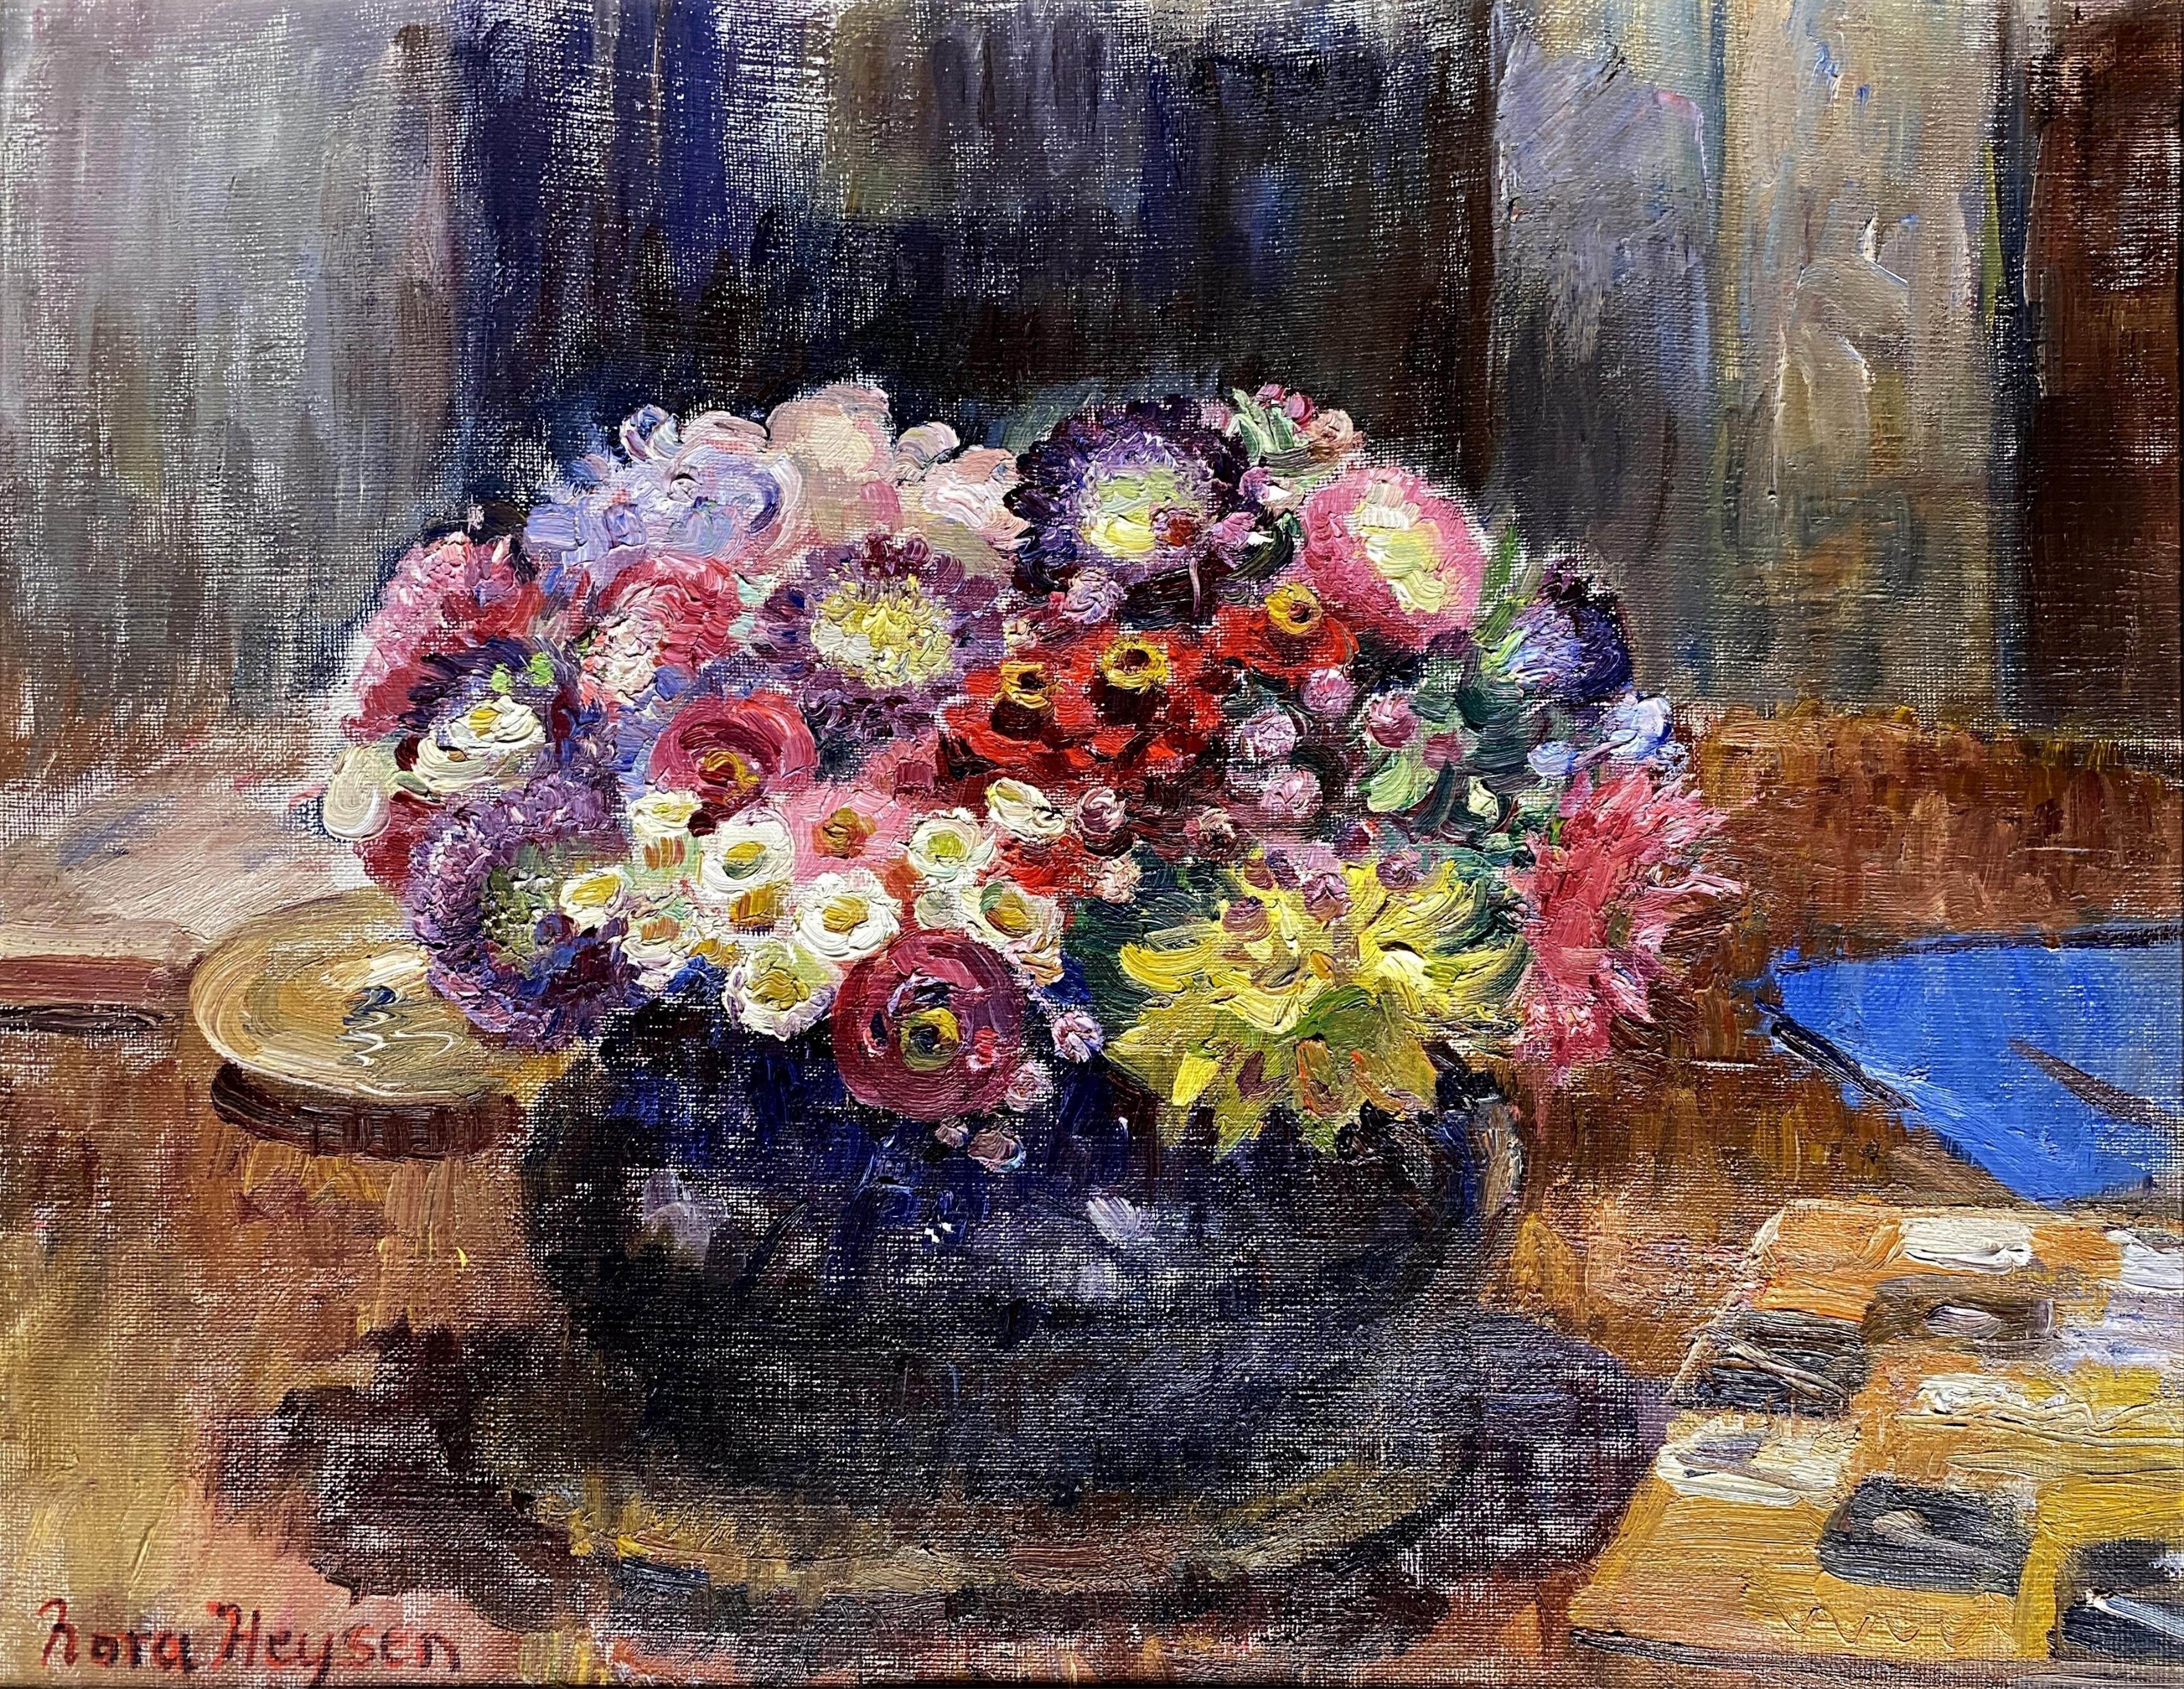 Nora Heysen, (1911-2003), Spring Posey in a Blue Vase, Oil on canvas